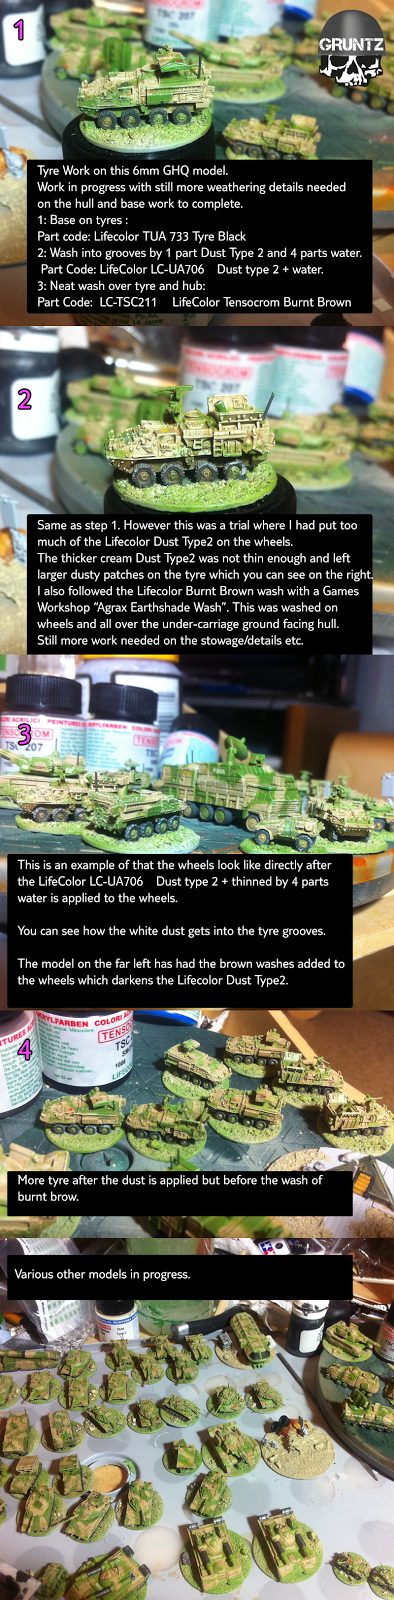 Large image of painted 6mm tanks.